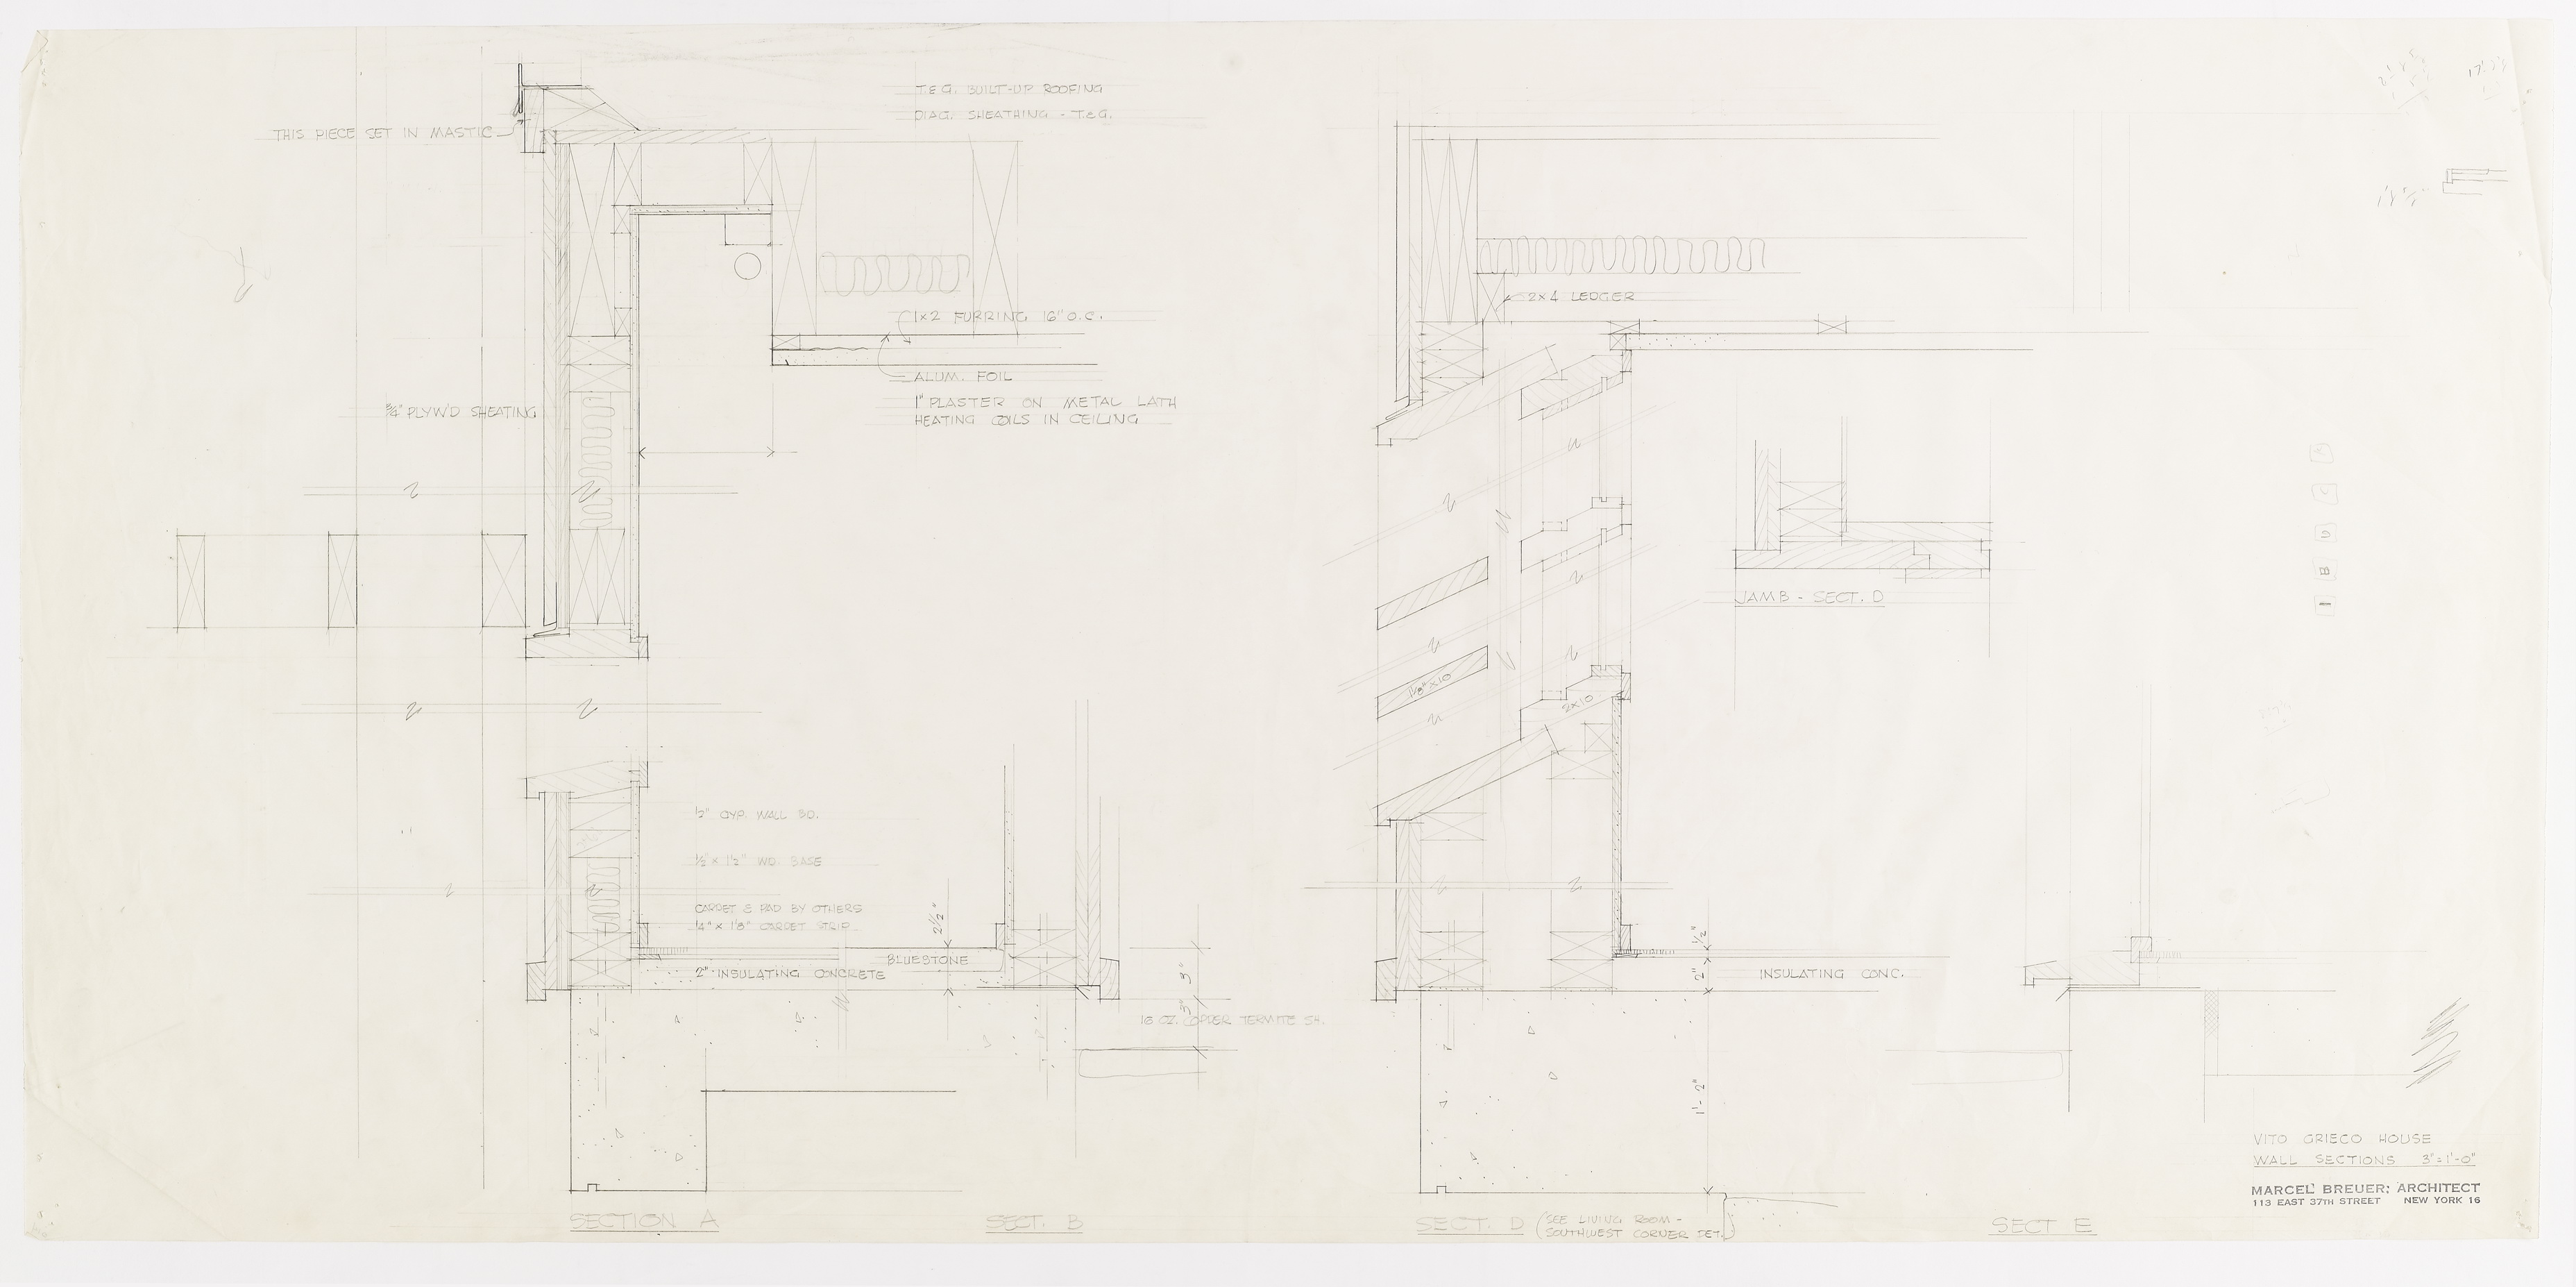 Click to select: Wall Sections (preliminary drawings)